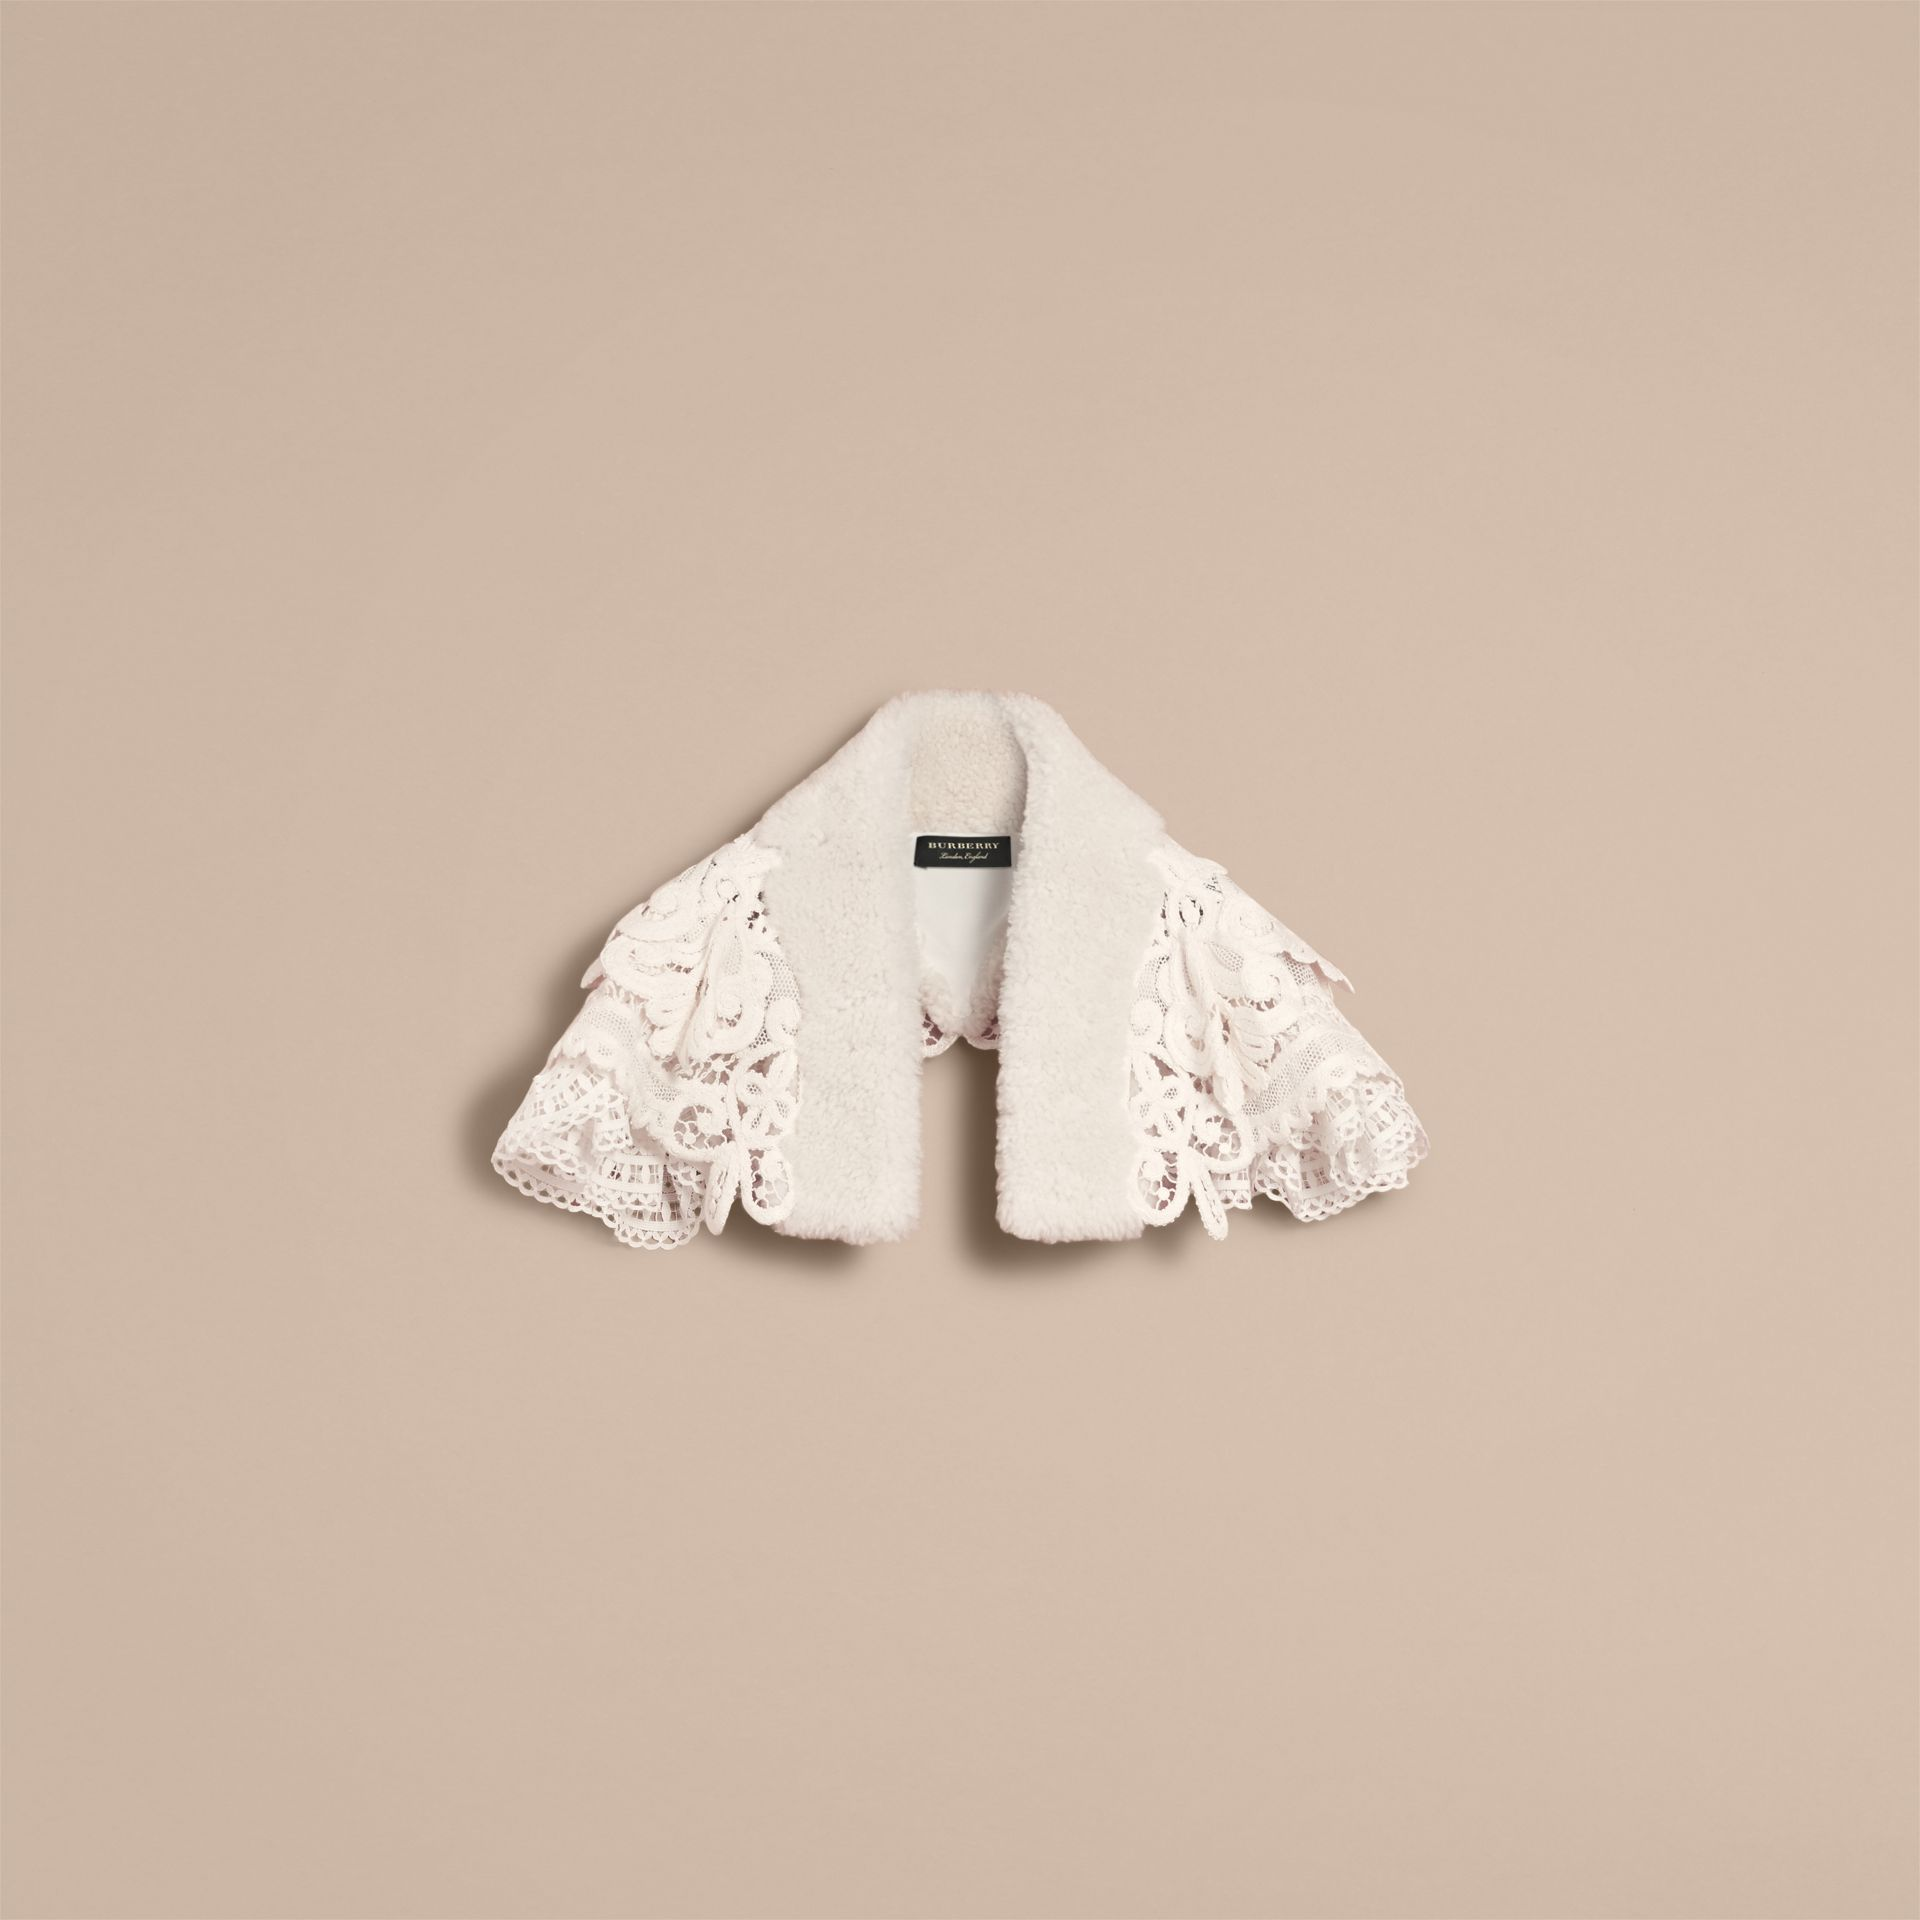 Lace Capelet with Shearling Collar in White - Women | Burberry - gallery image 4